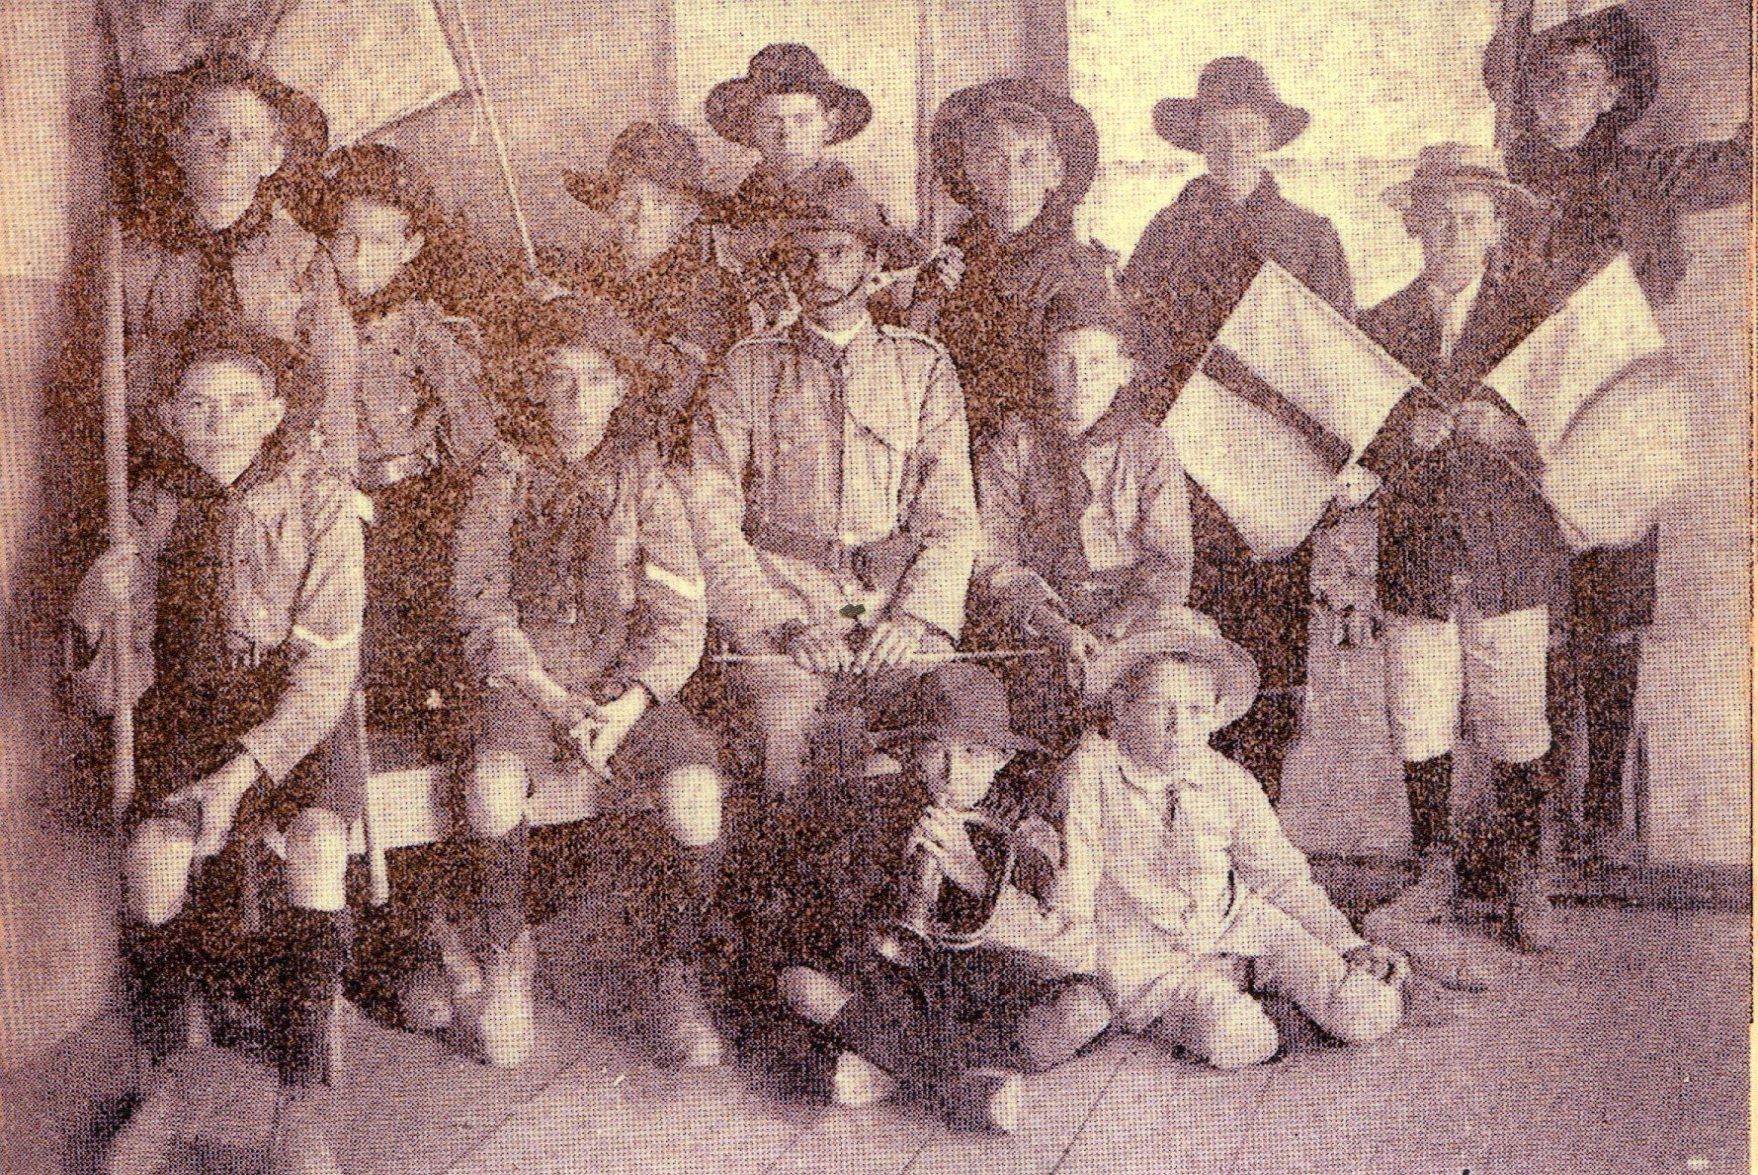 Newspaper clipping photo of first Ashgrove Scout group, 1909.